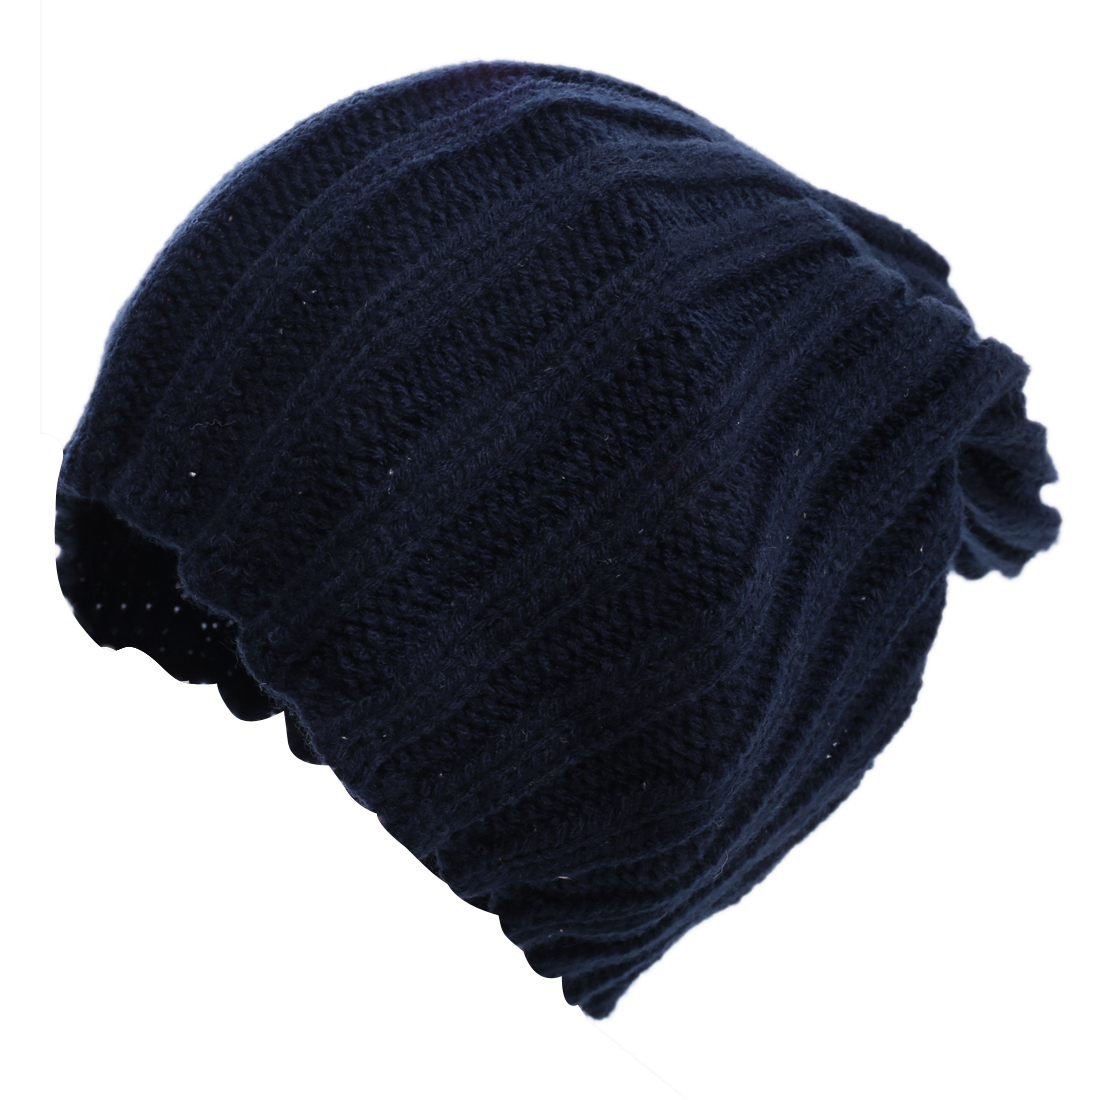 Unisex Dark Blue Stylish Textured Solid Color Stretch Warm Winter Beanie Hat